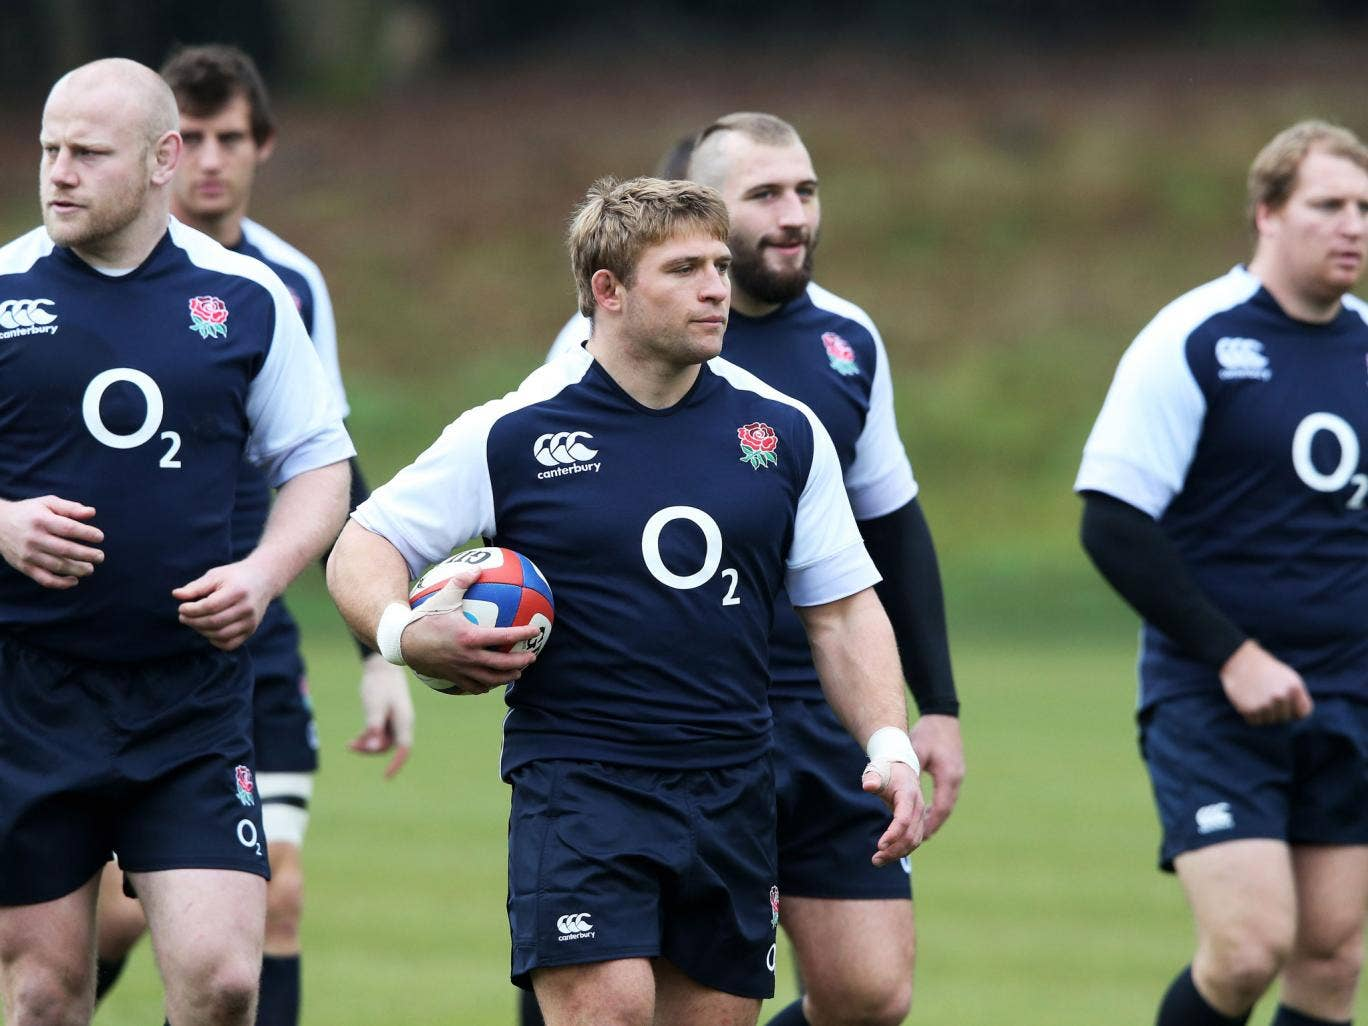 The England team training before their match with Australia